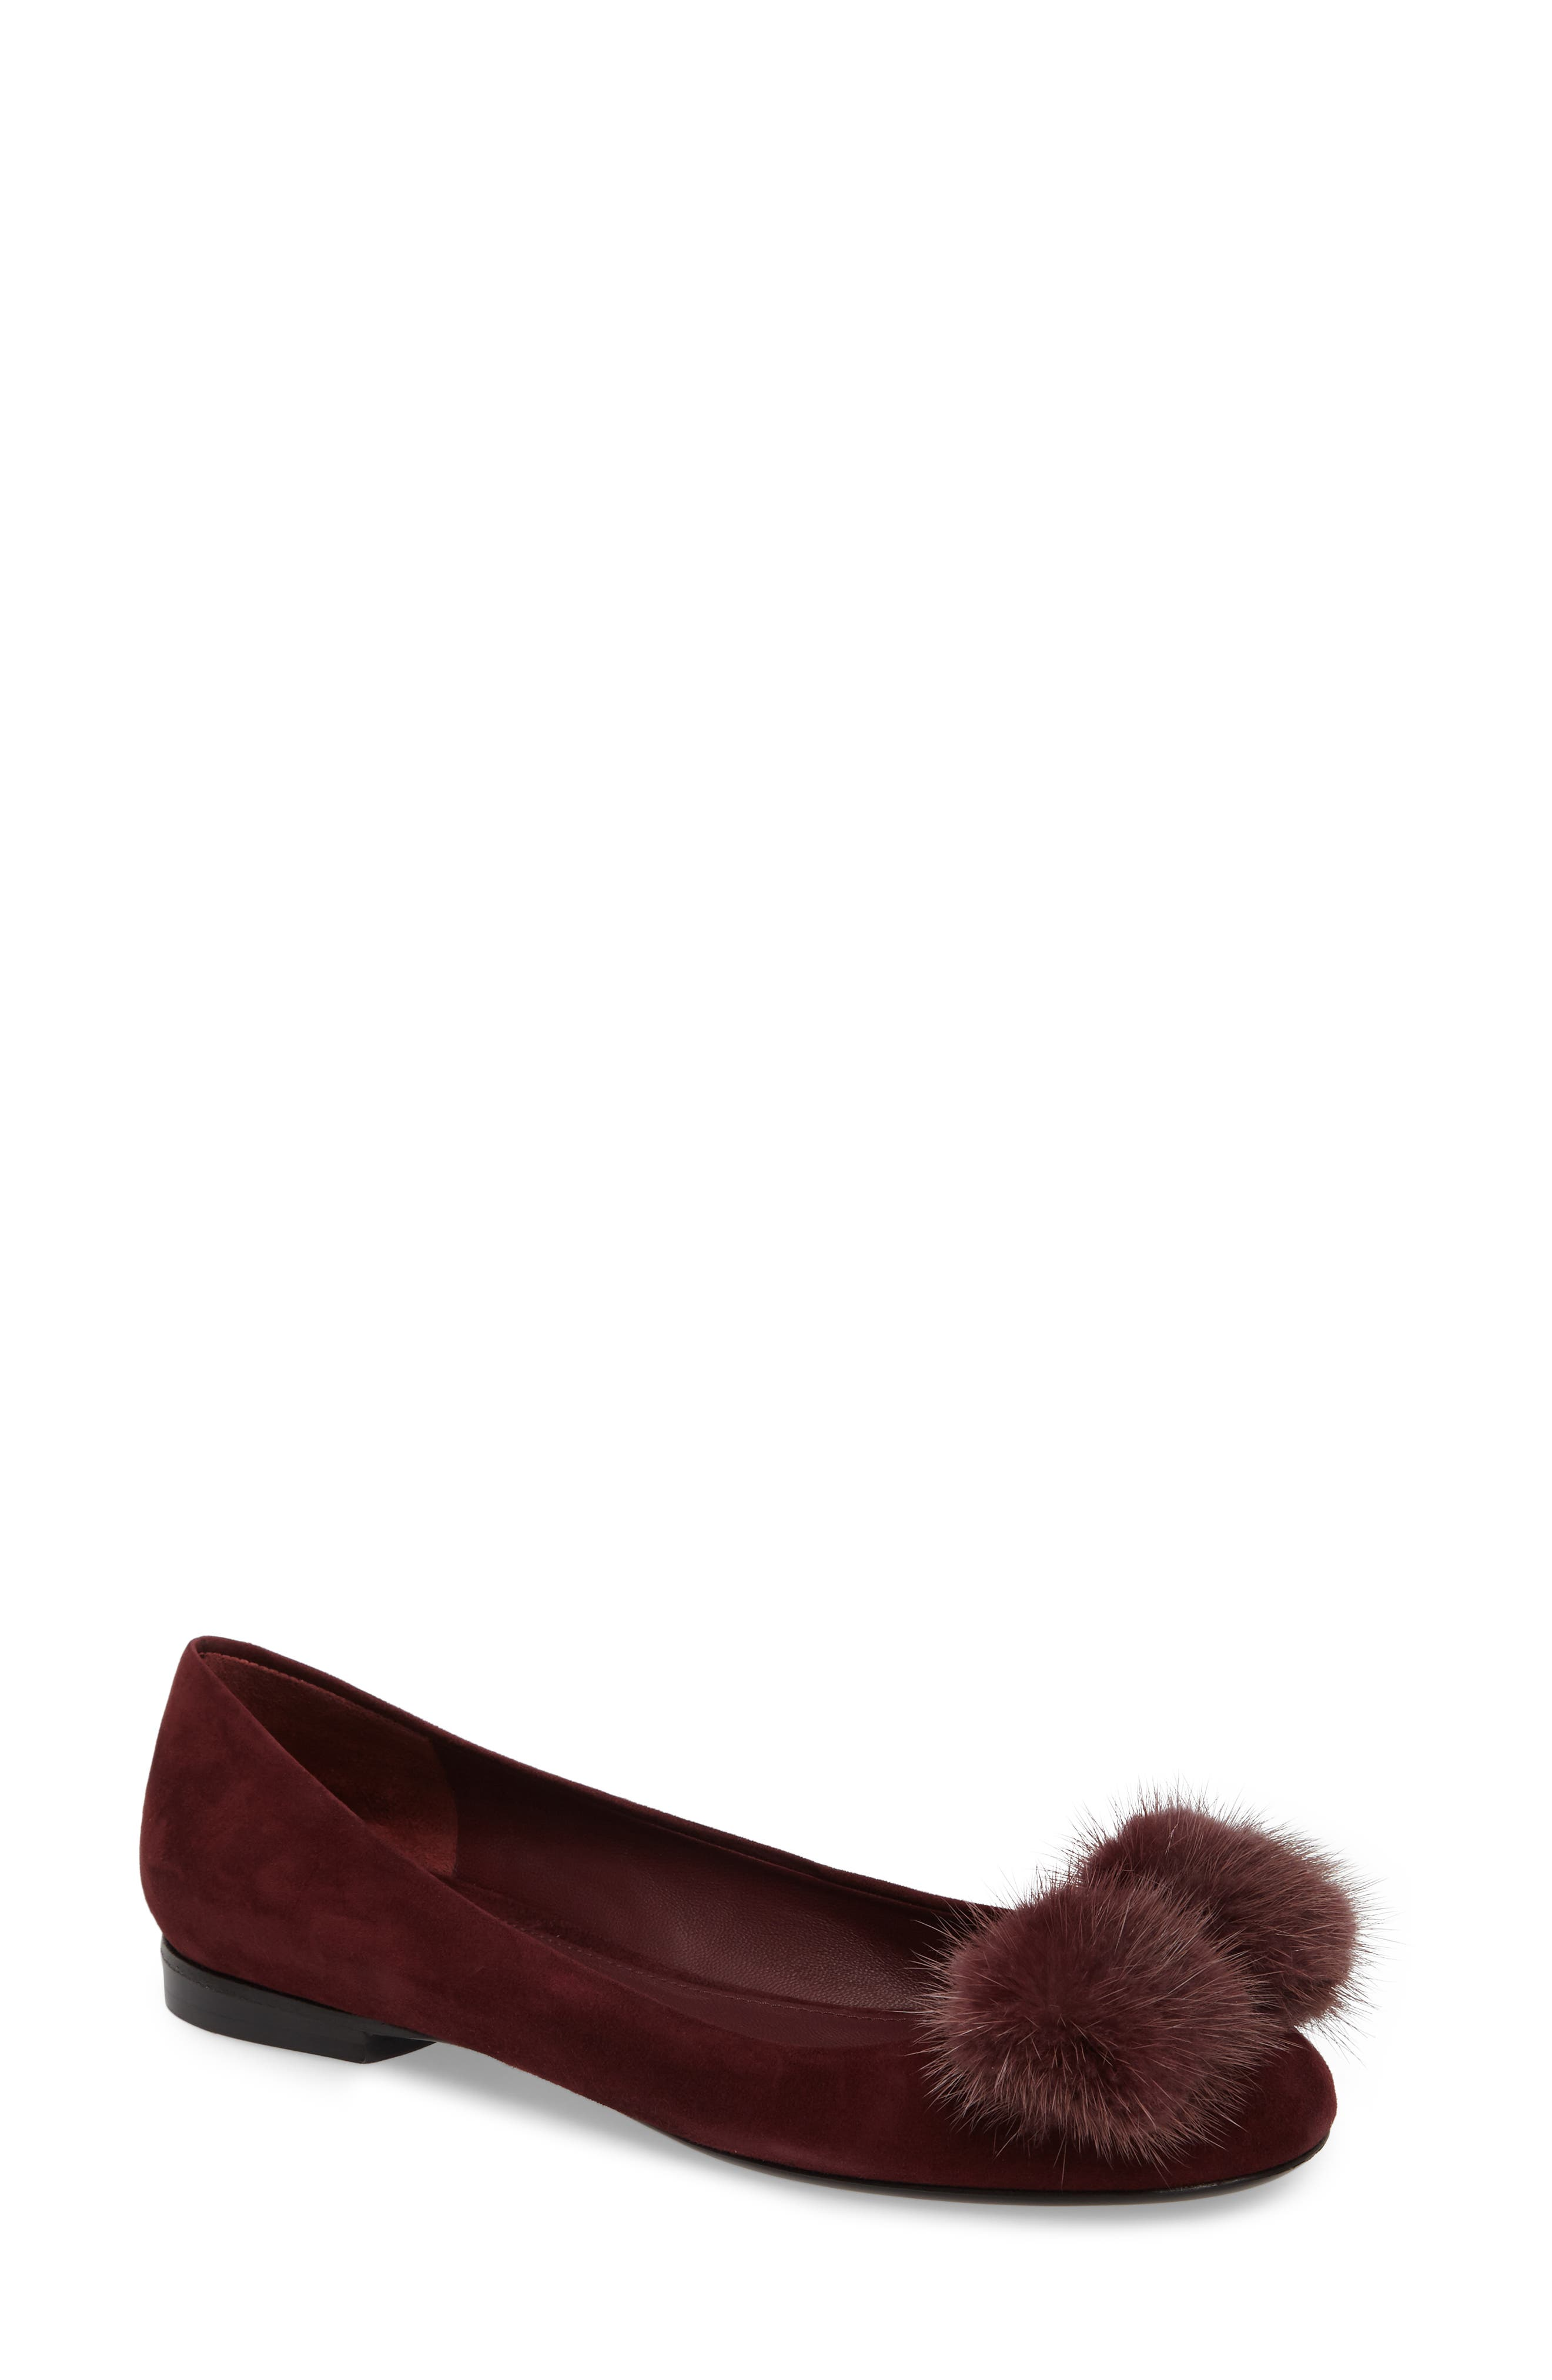 Salvatore Ferragamo Genuine Mink Fur Flat (Women)